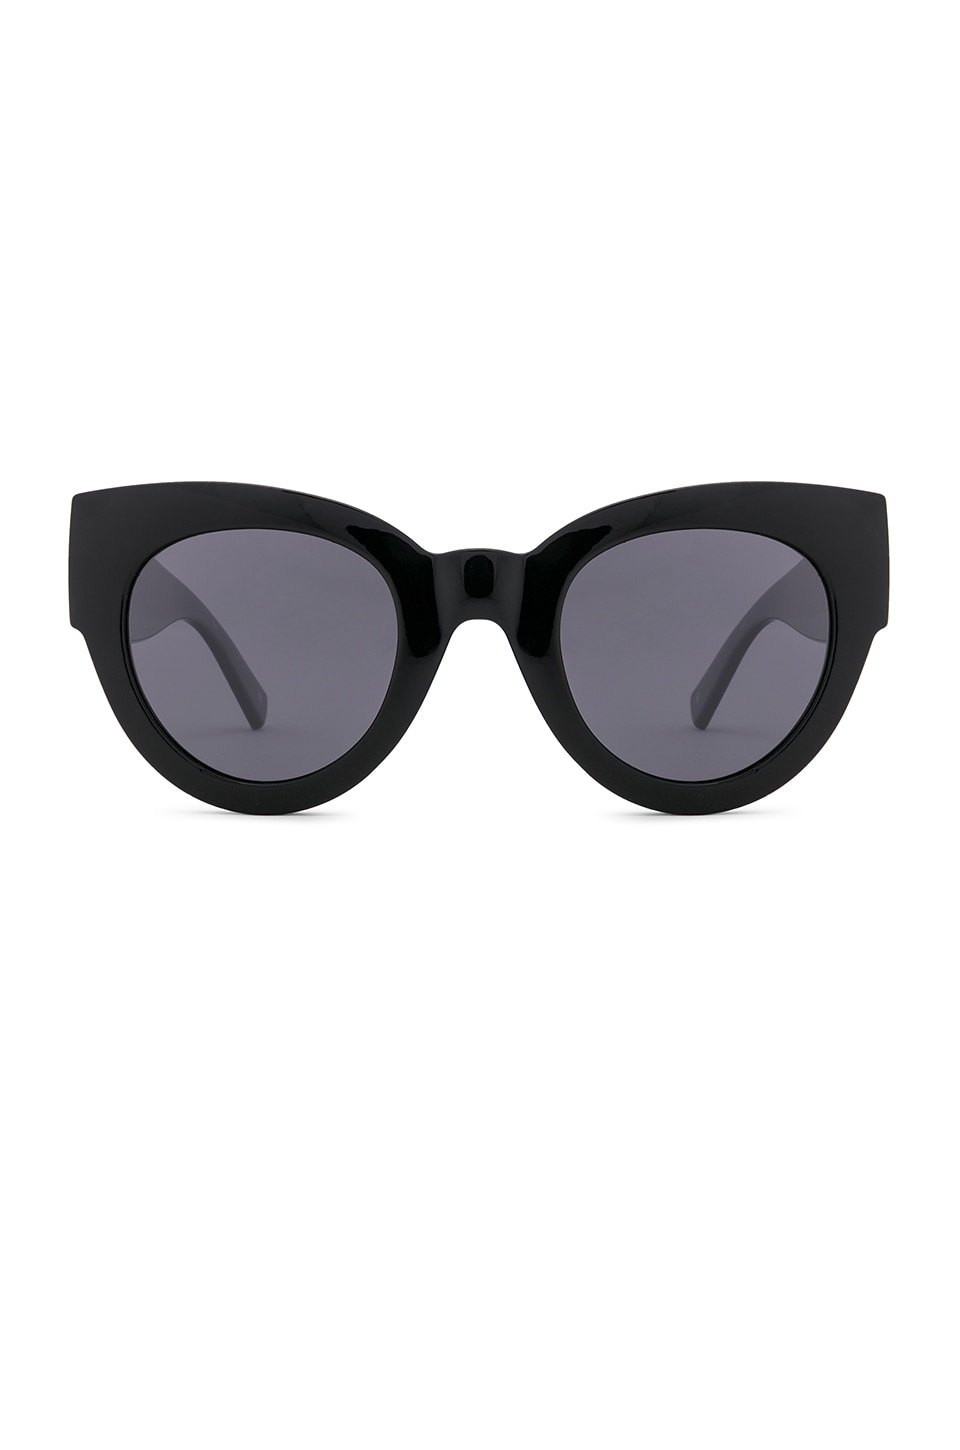 Le Specs Matriarch in Black & Smoke Mono